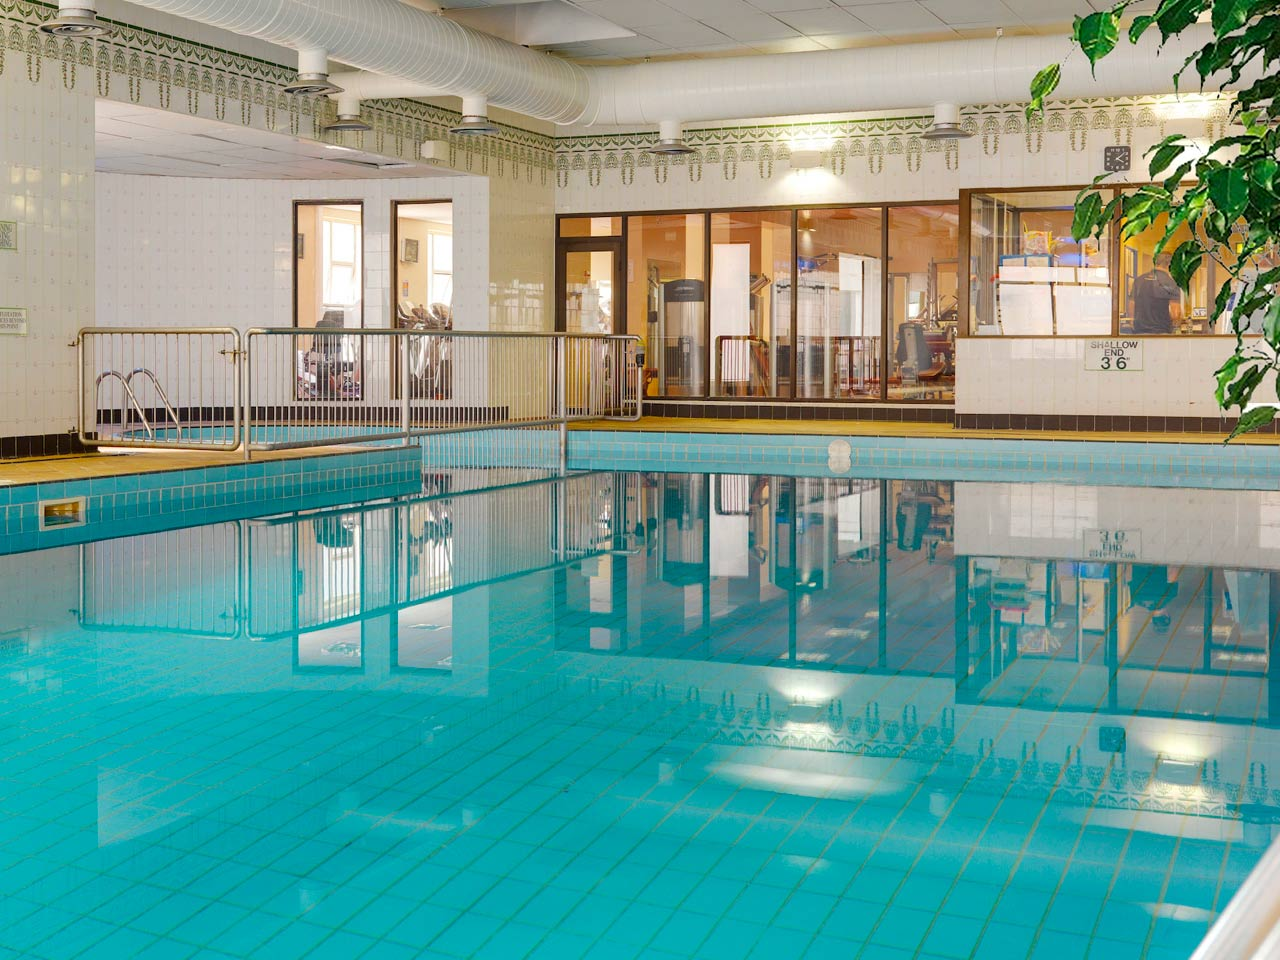 Hotel in county clare county clare hotels co clare - Cheap hotels in ireland with swimming pool ...